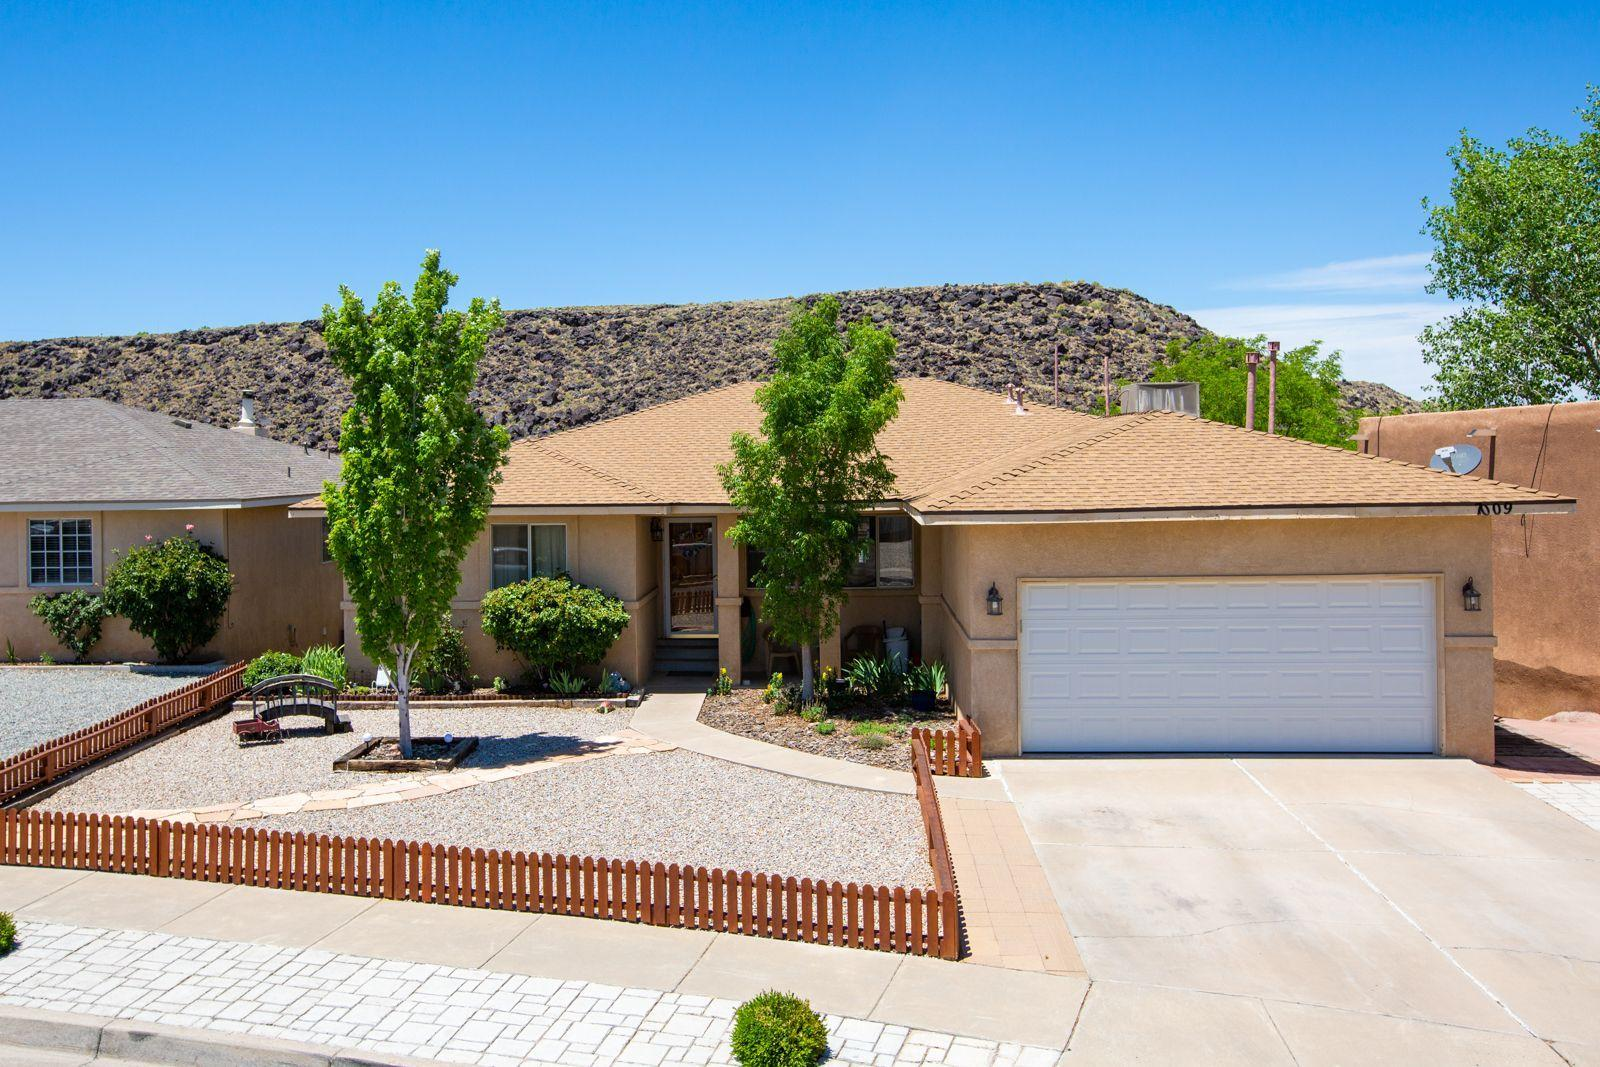 Hurry to see this renovated,  move in ready home! Boasting gracious living and entertaining areas as well as a spectacular view of the Petroglyphs. Won't last long, schedule to see it today!